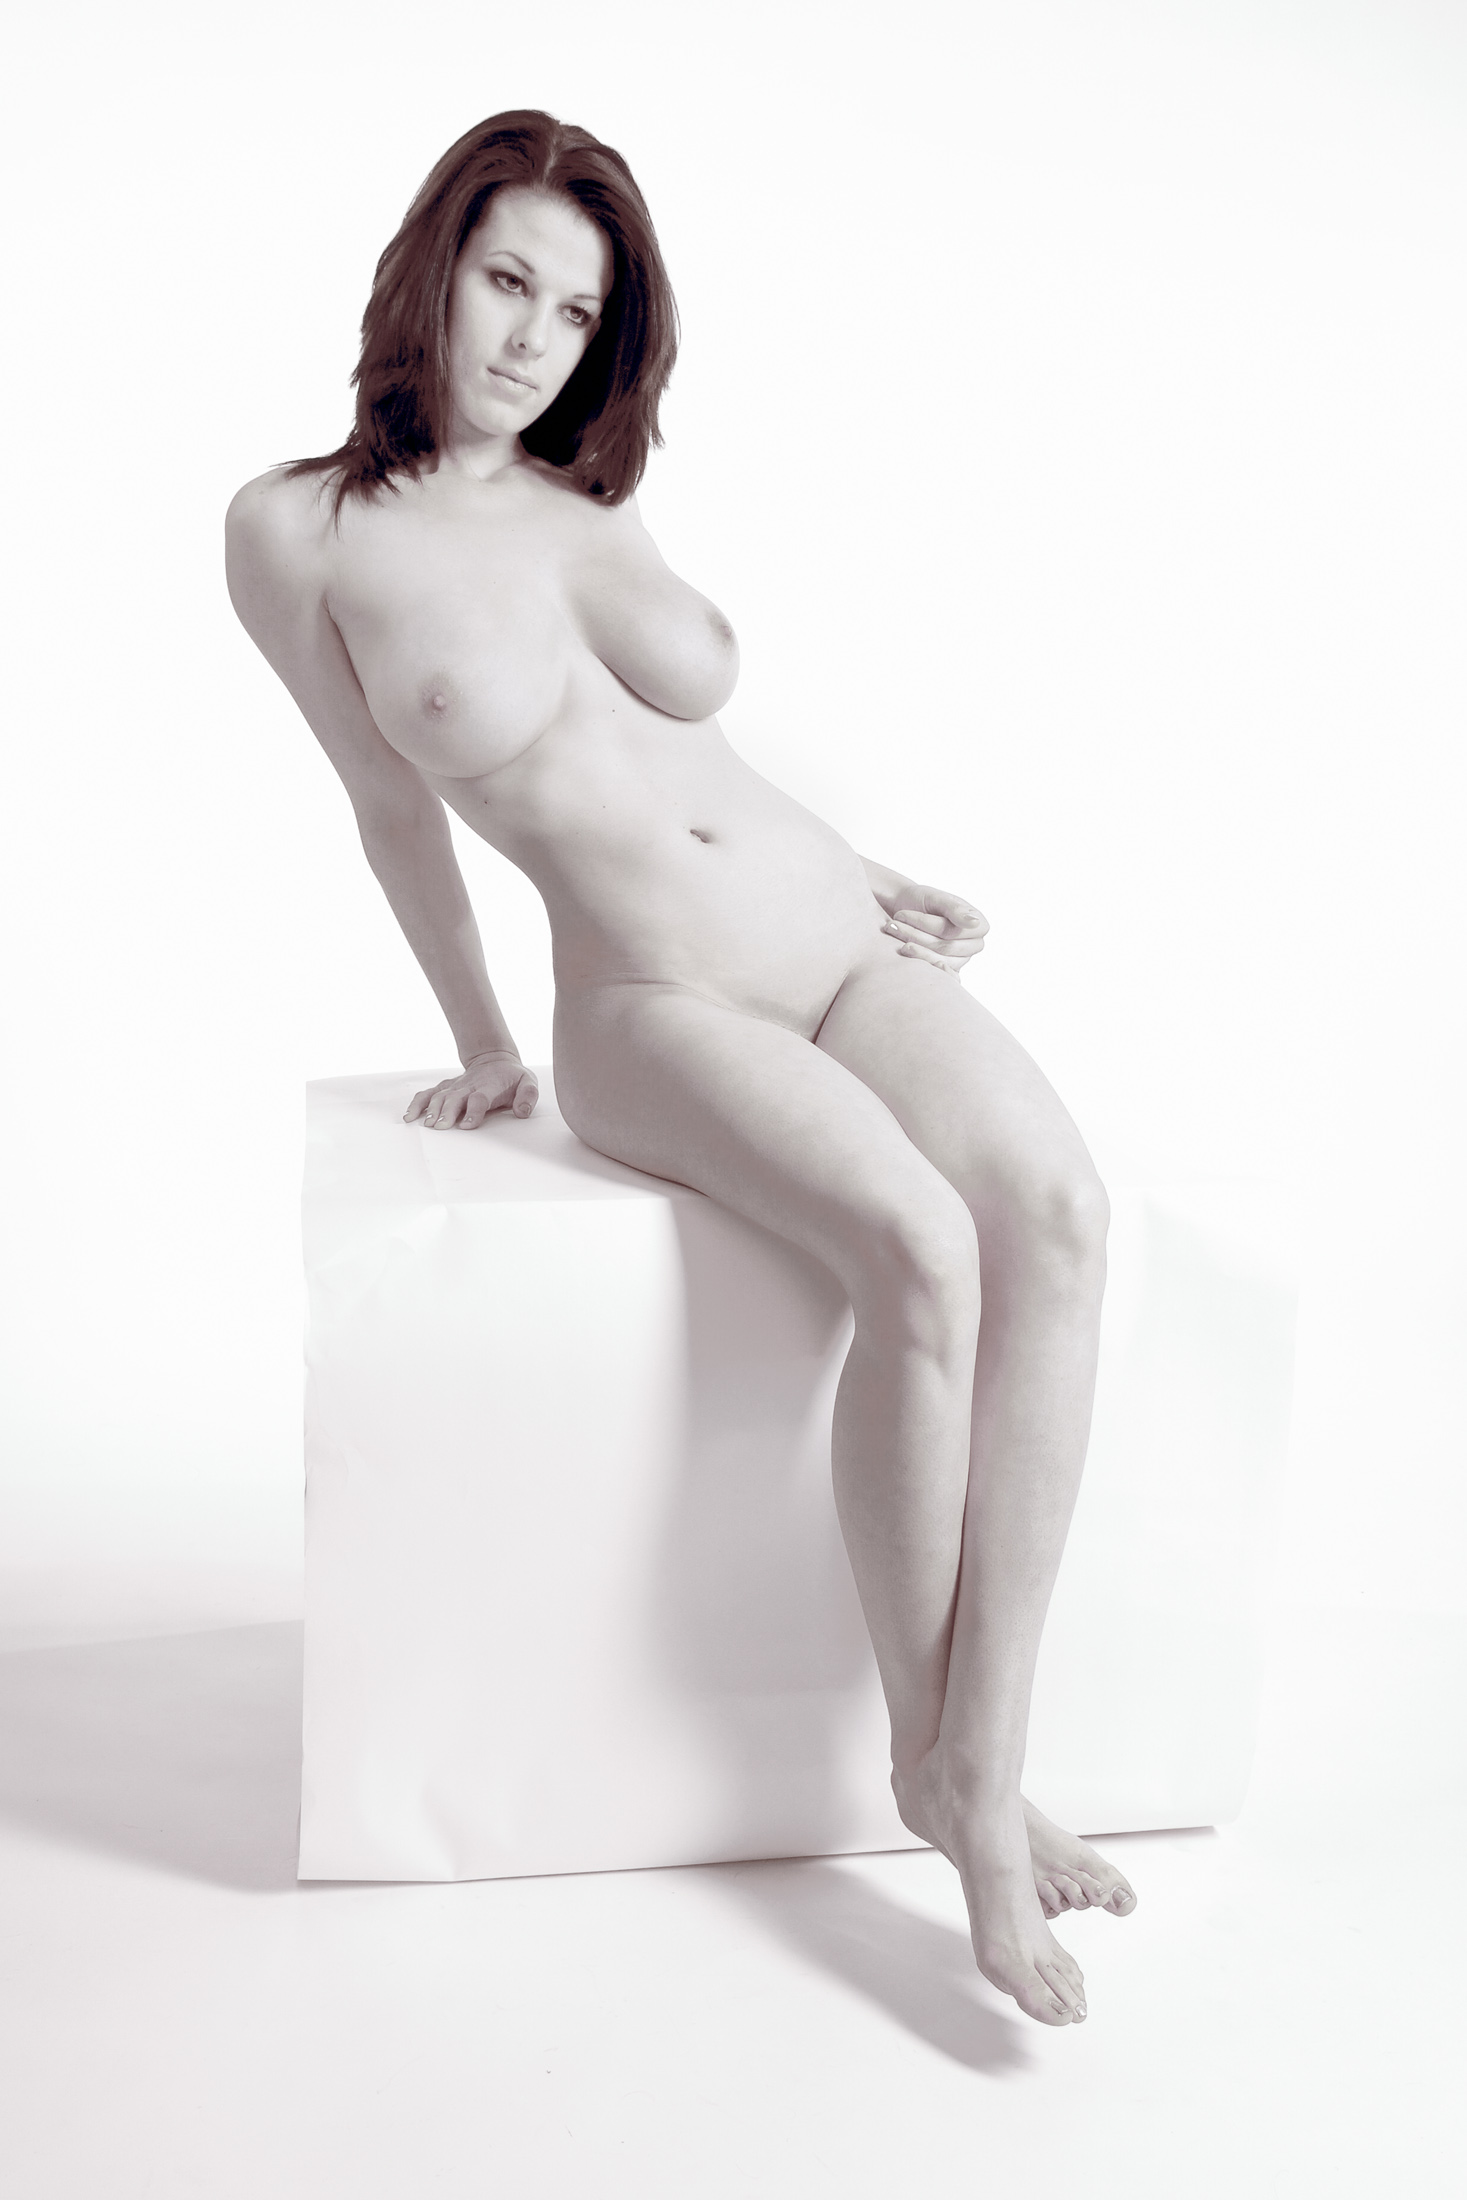 Fine art nude photography pin-up girl